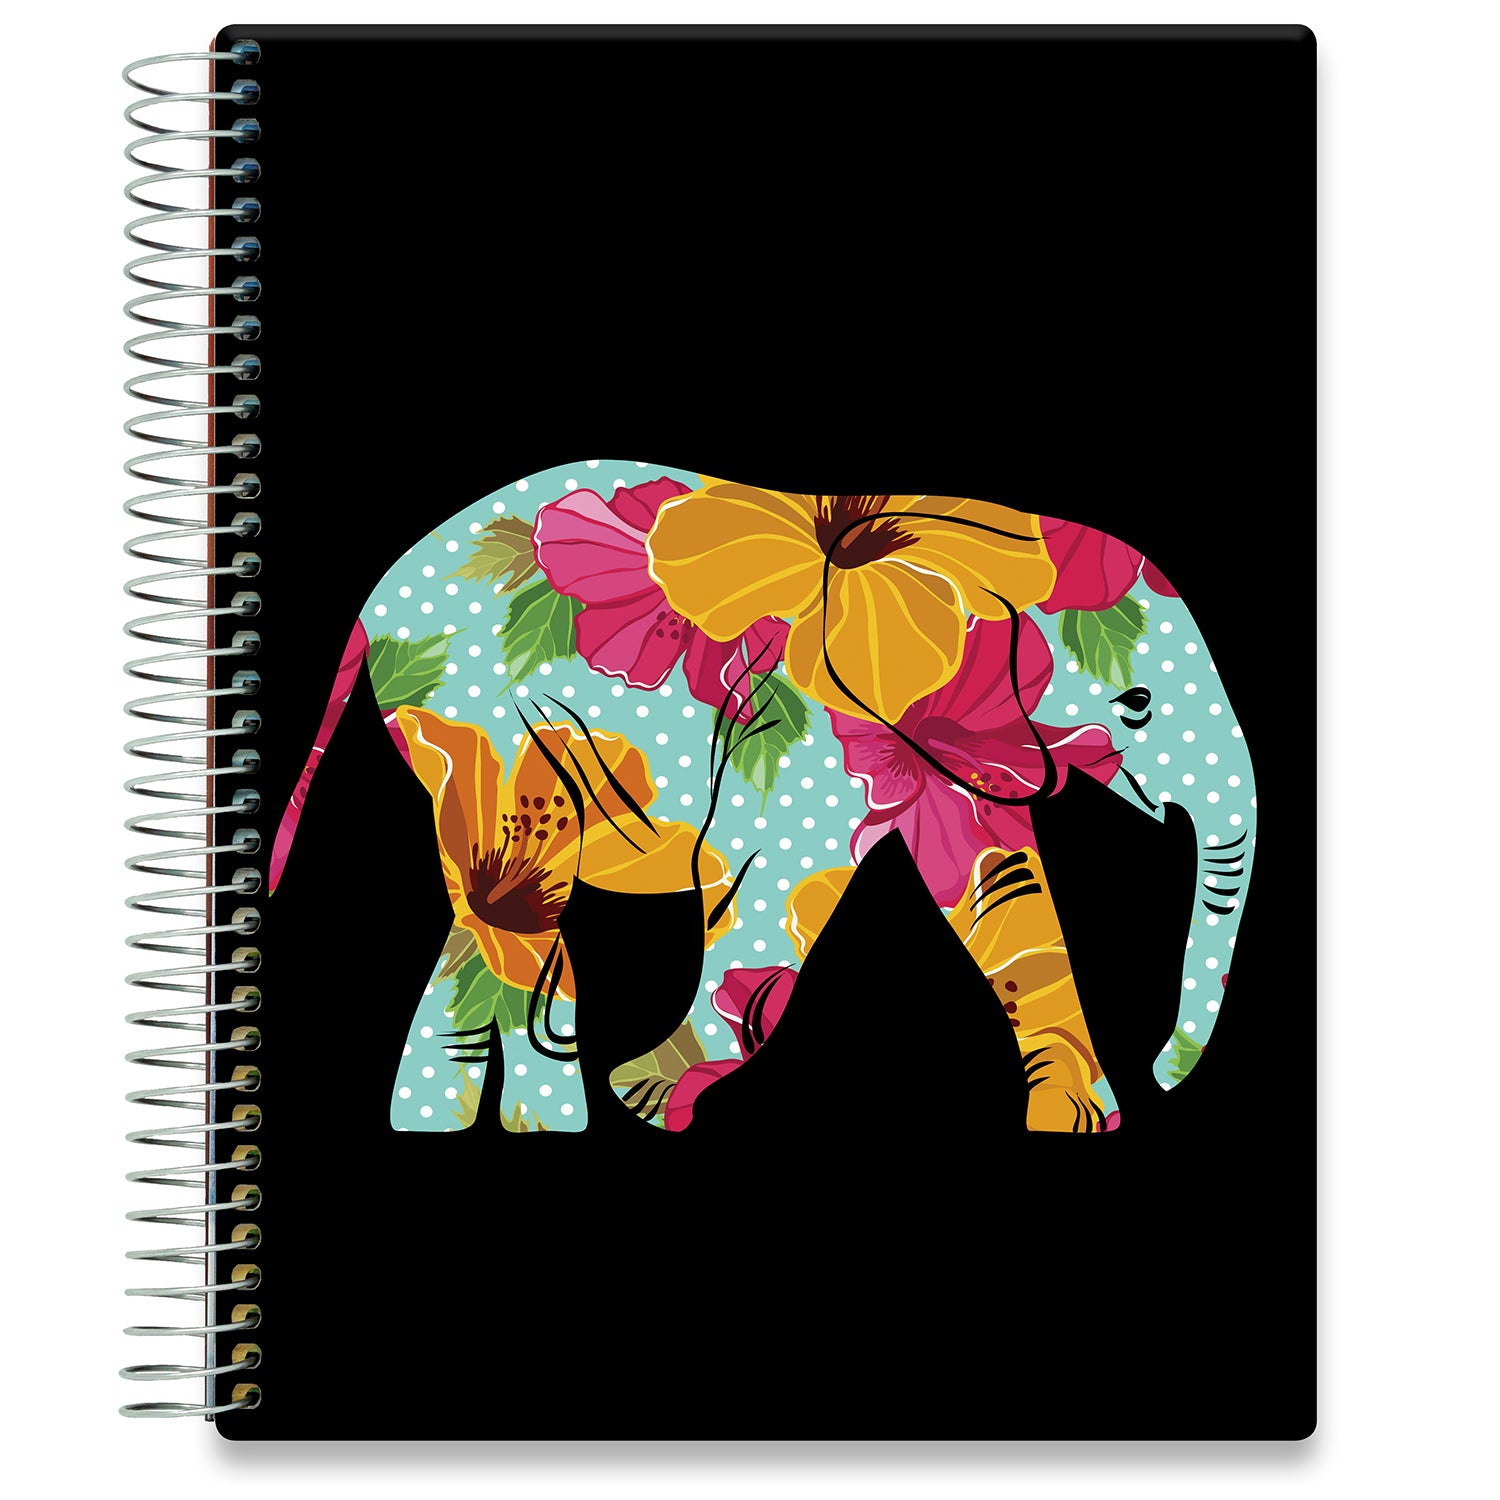 Planner 2021-2022 • April 2021 to June 2022 Academic Year • 8.5x11 Hardcover • Floral Elephant